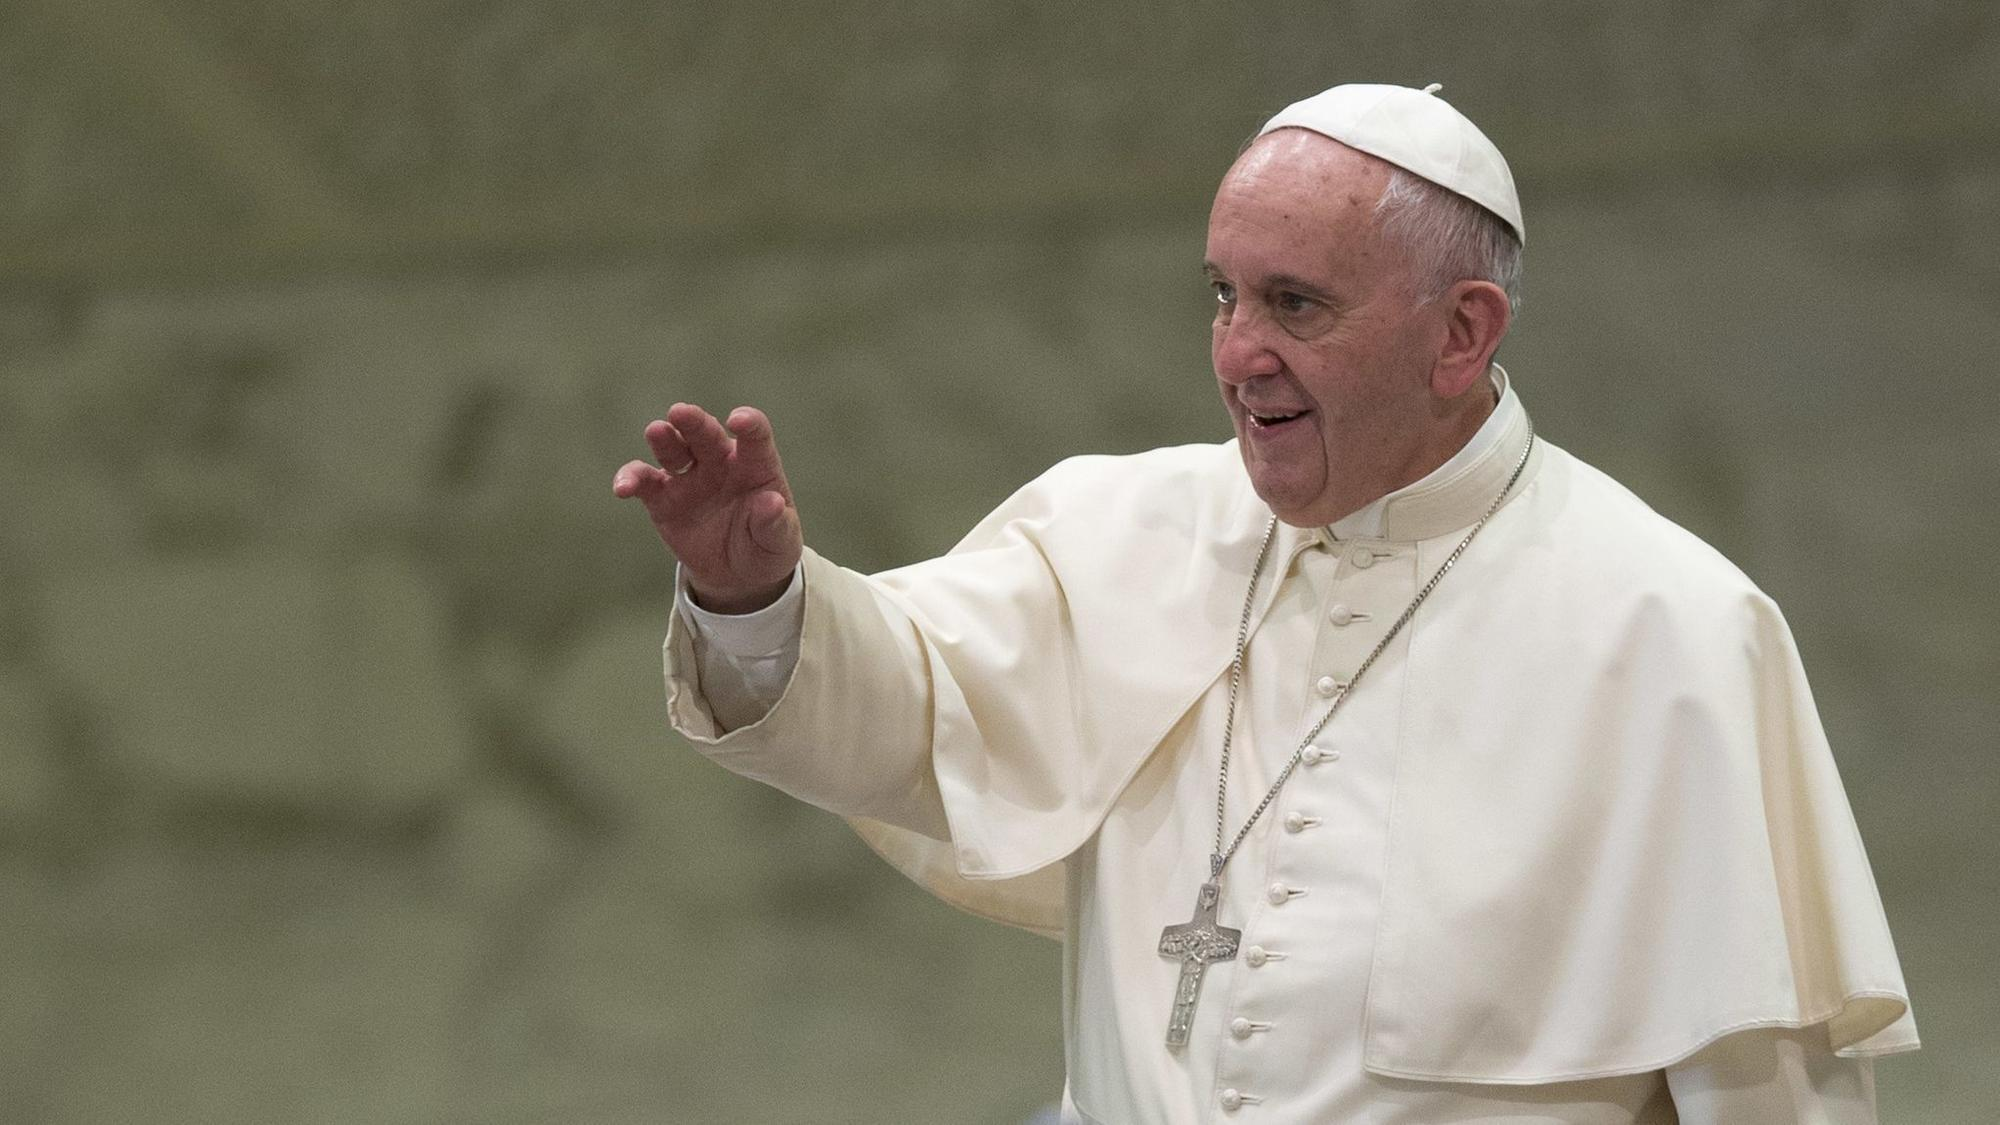 Catholic church is in no position to lecture others on criminal punishment